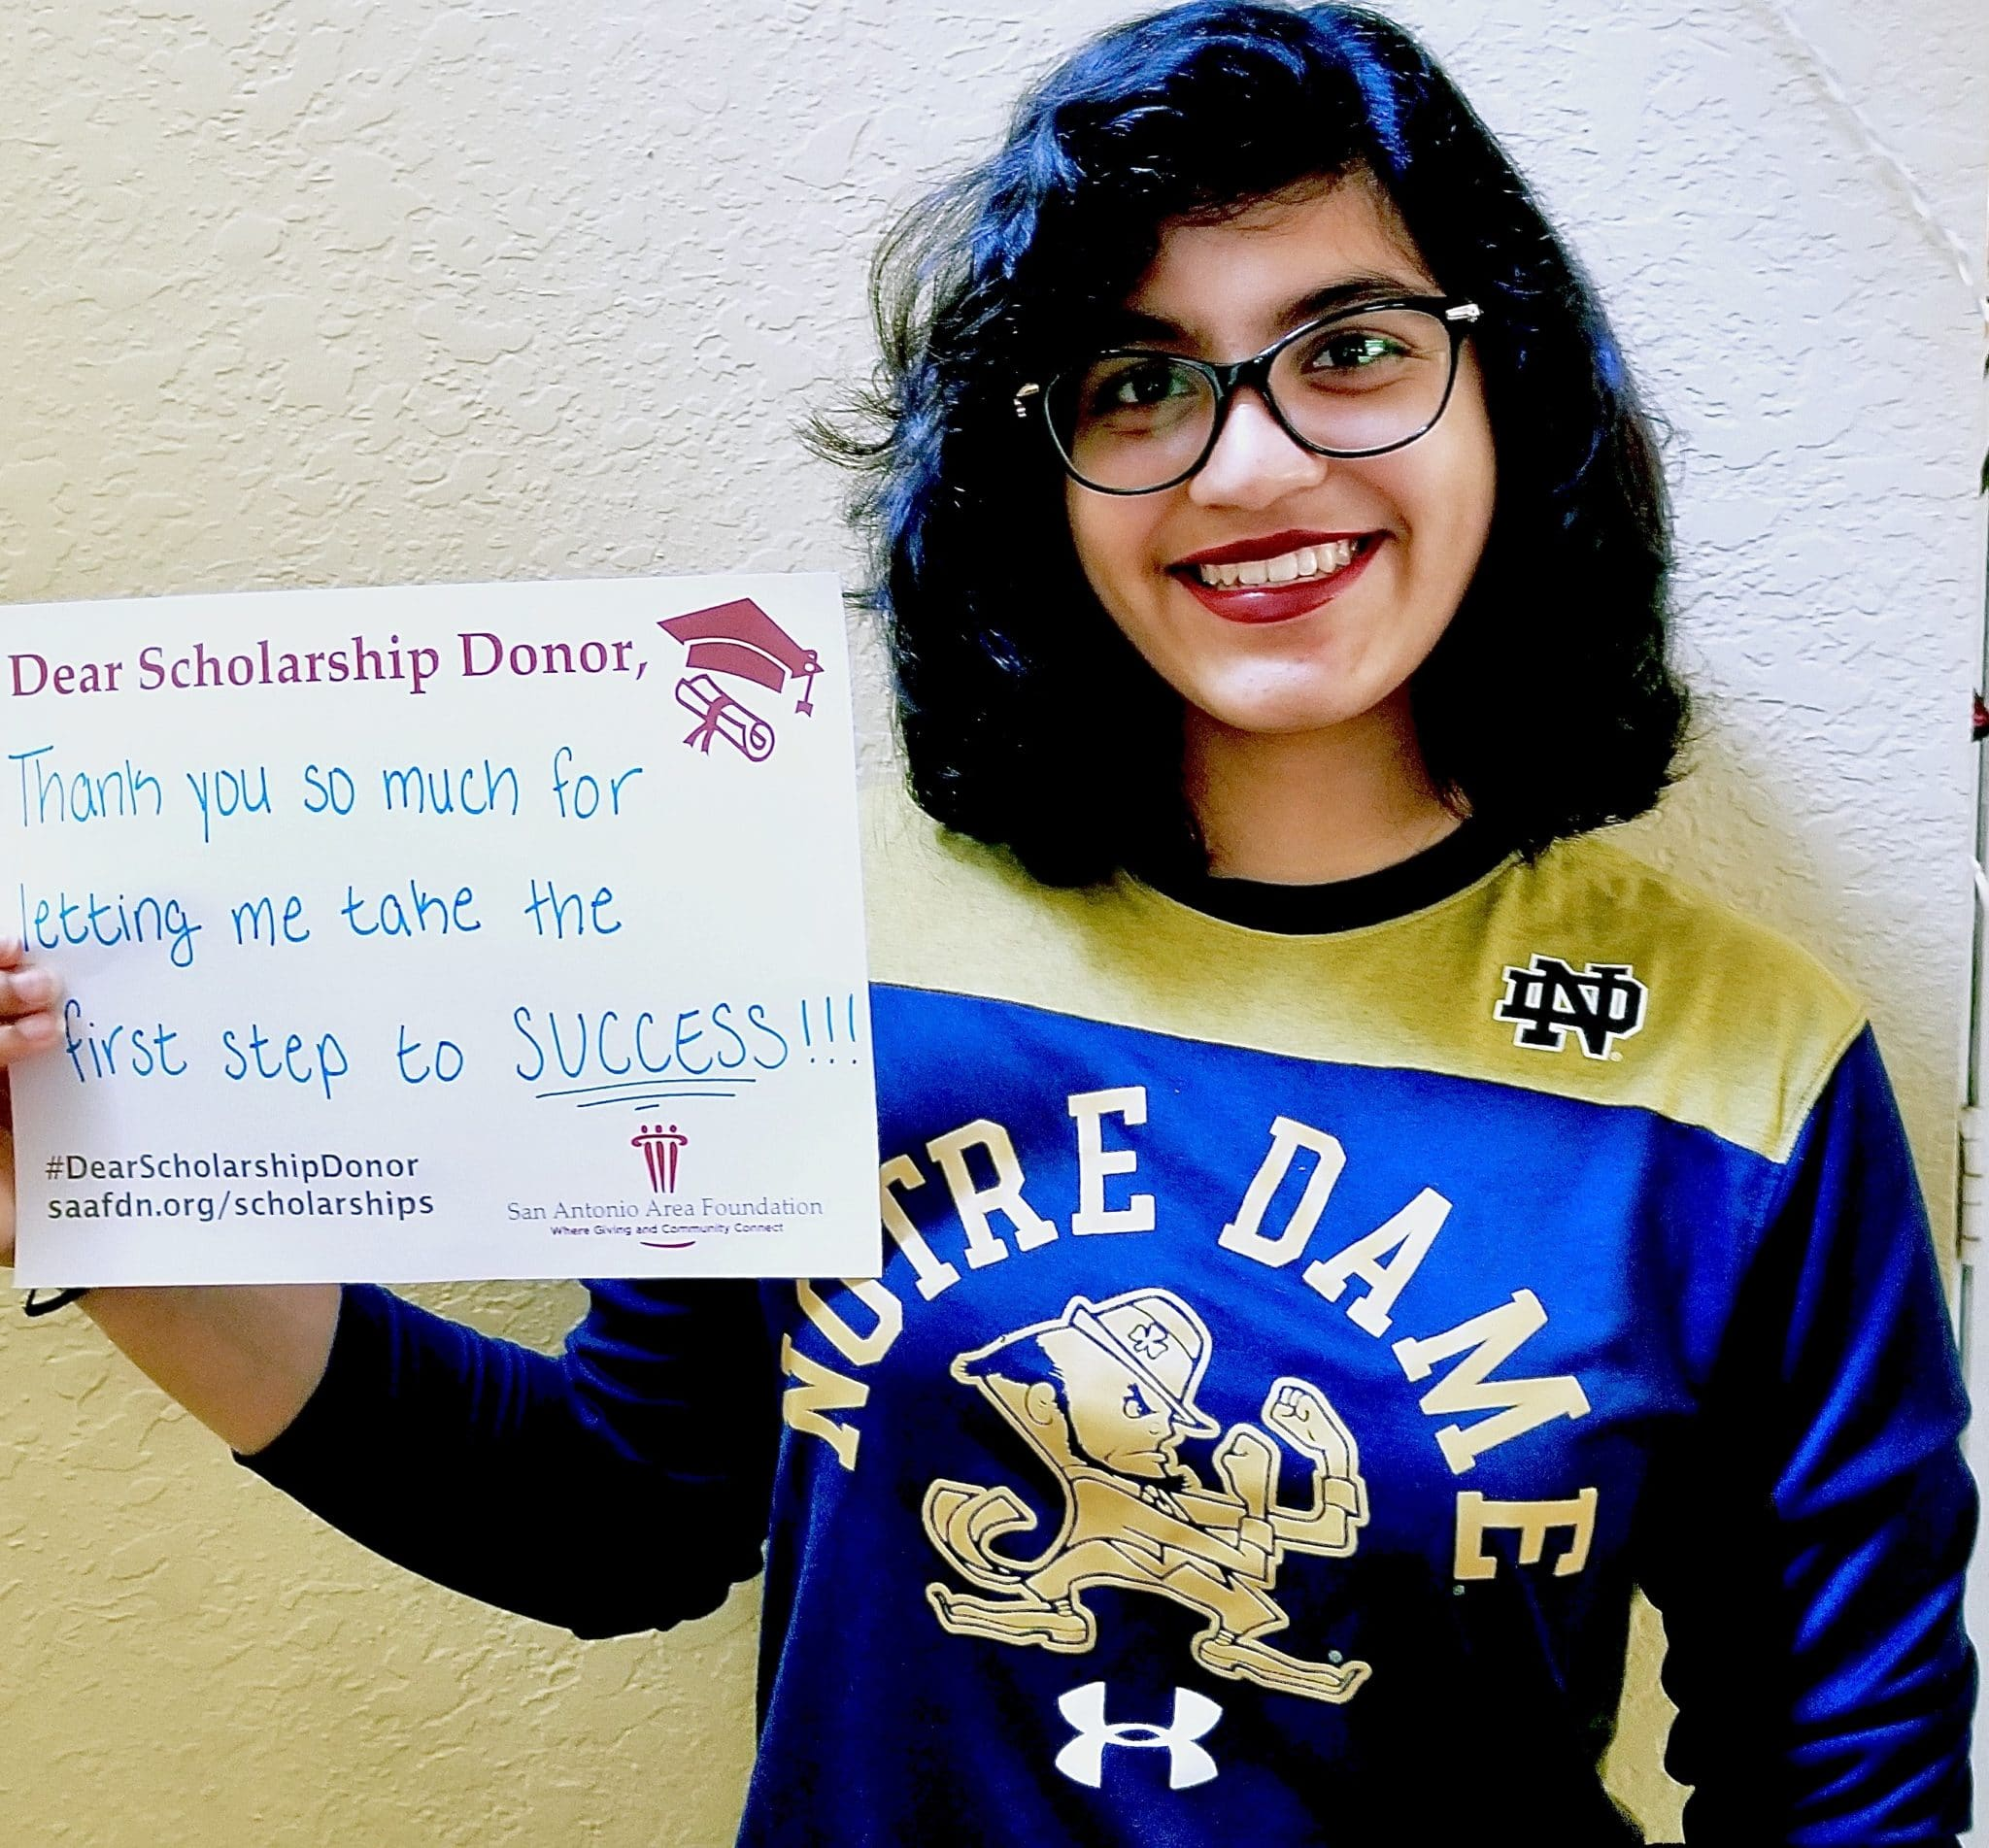 Scholarship recipient holding a thank you sign